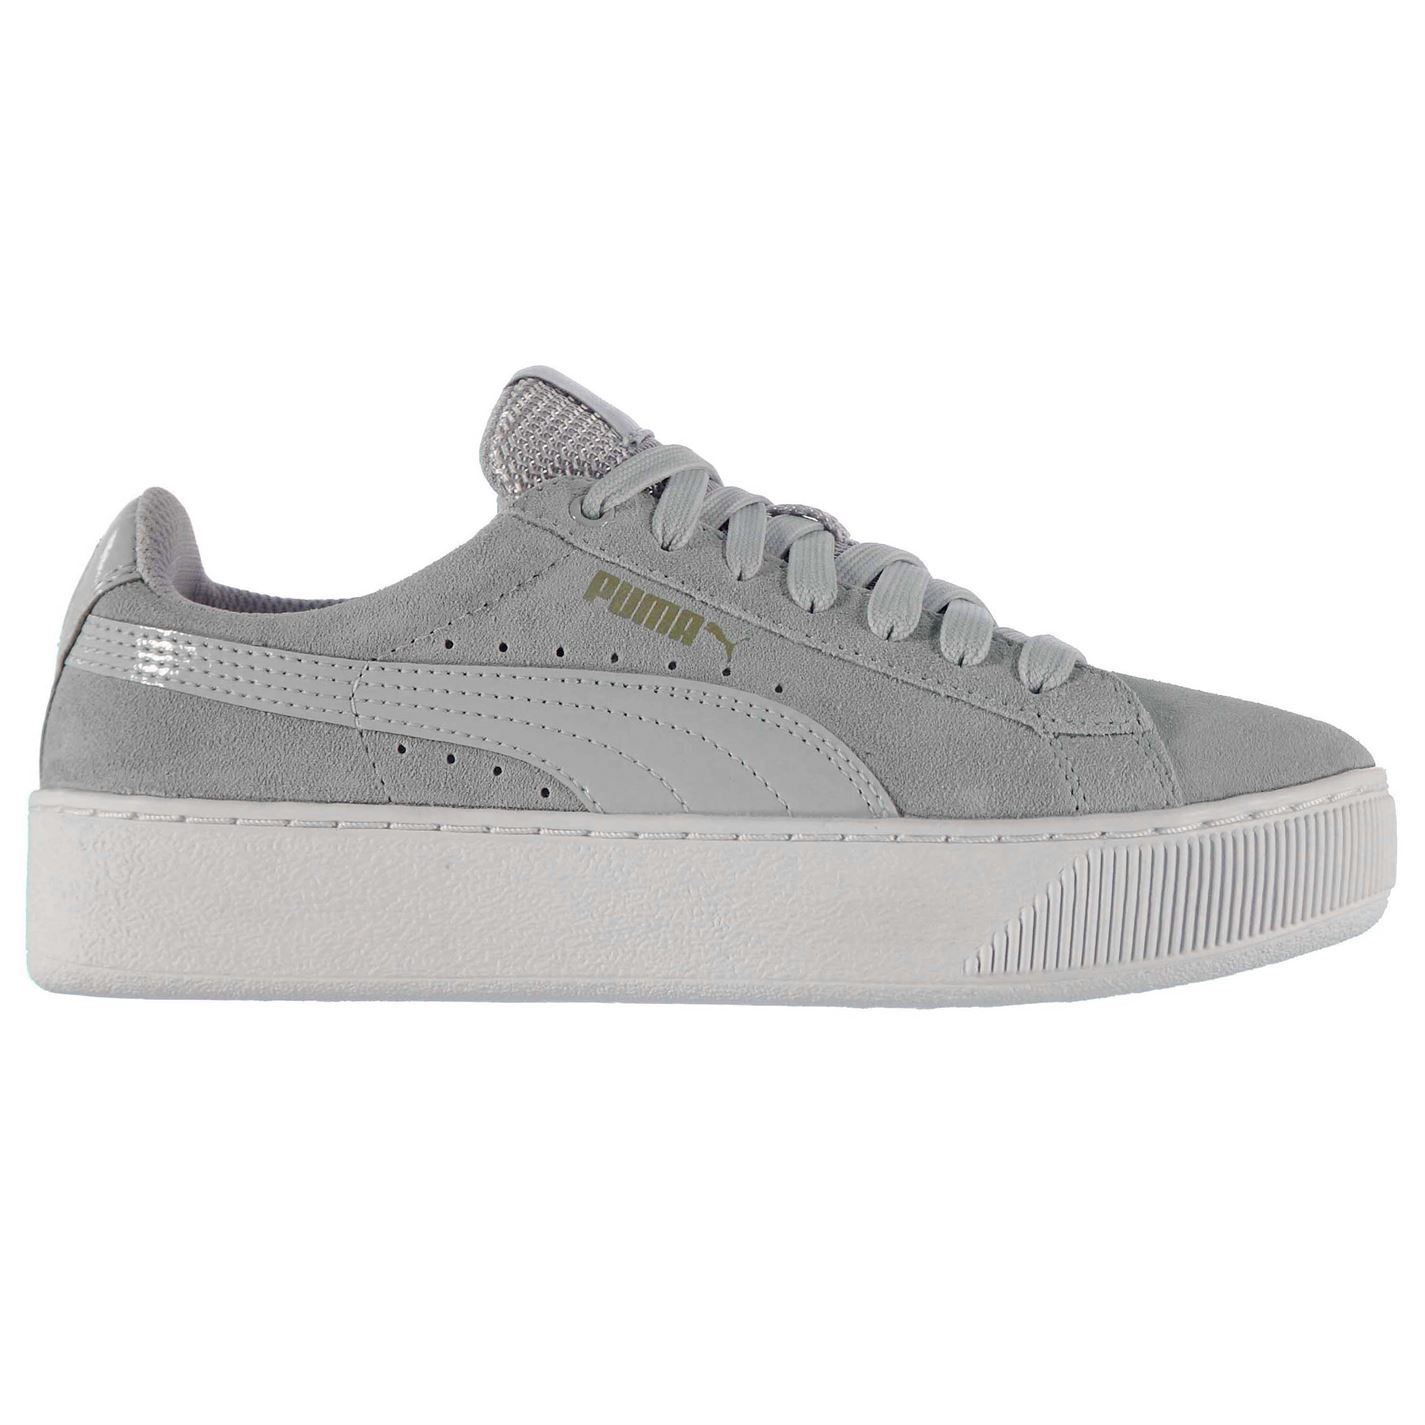 9fd0dd5fb02c ... Puma Vikky Platform Trainers Womens Grey Violet Casual Sneakers Shoes  Footwear ...